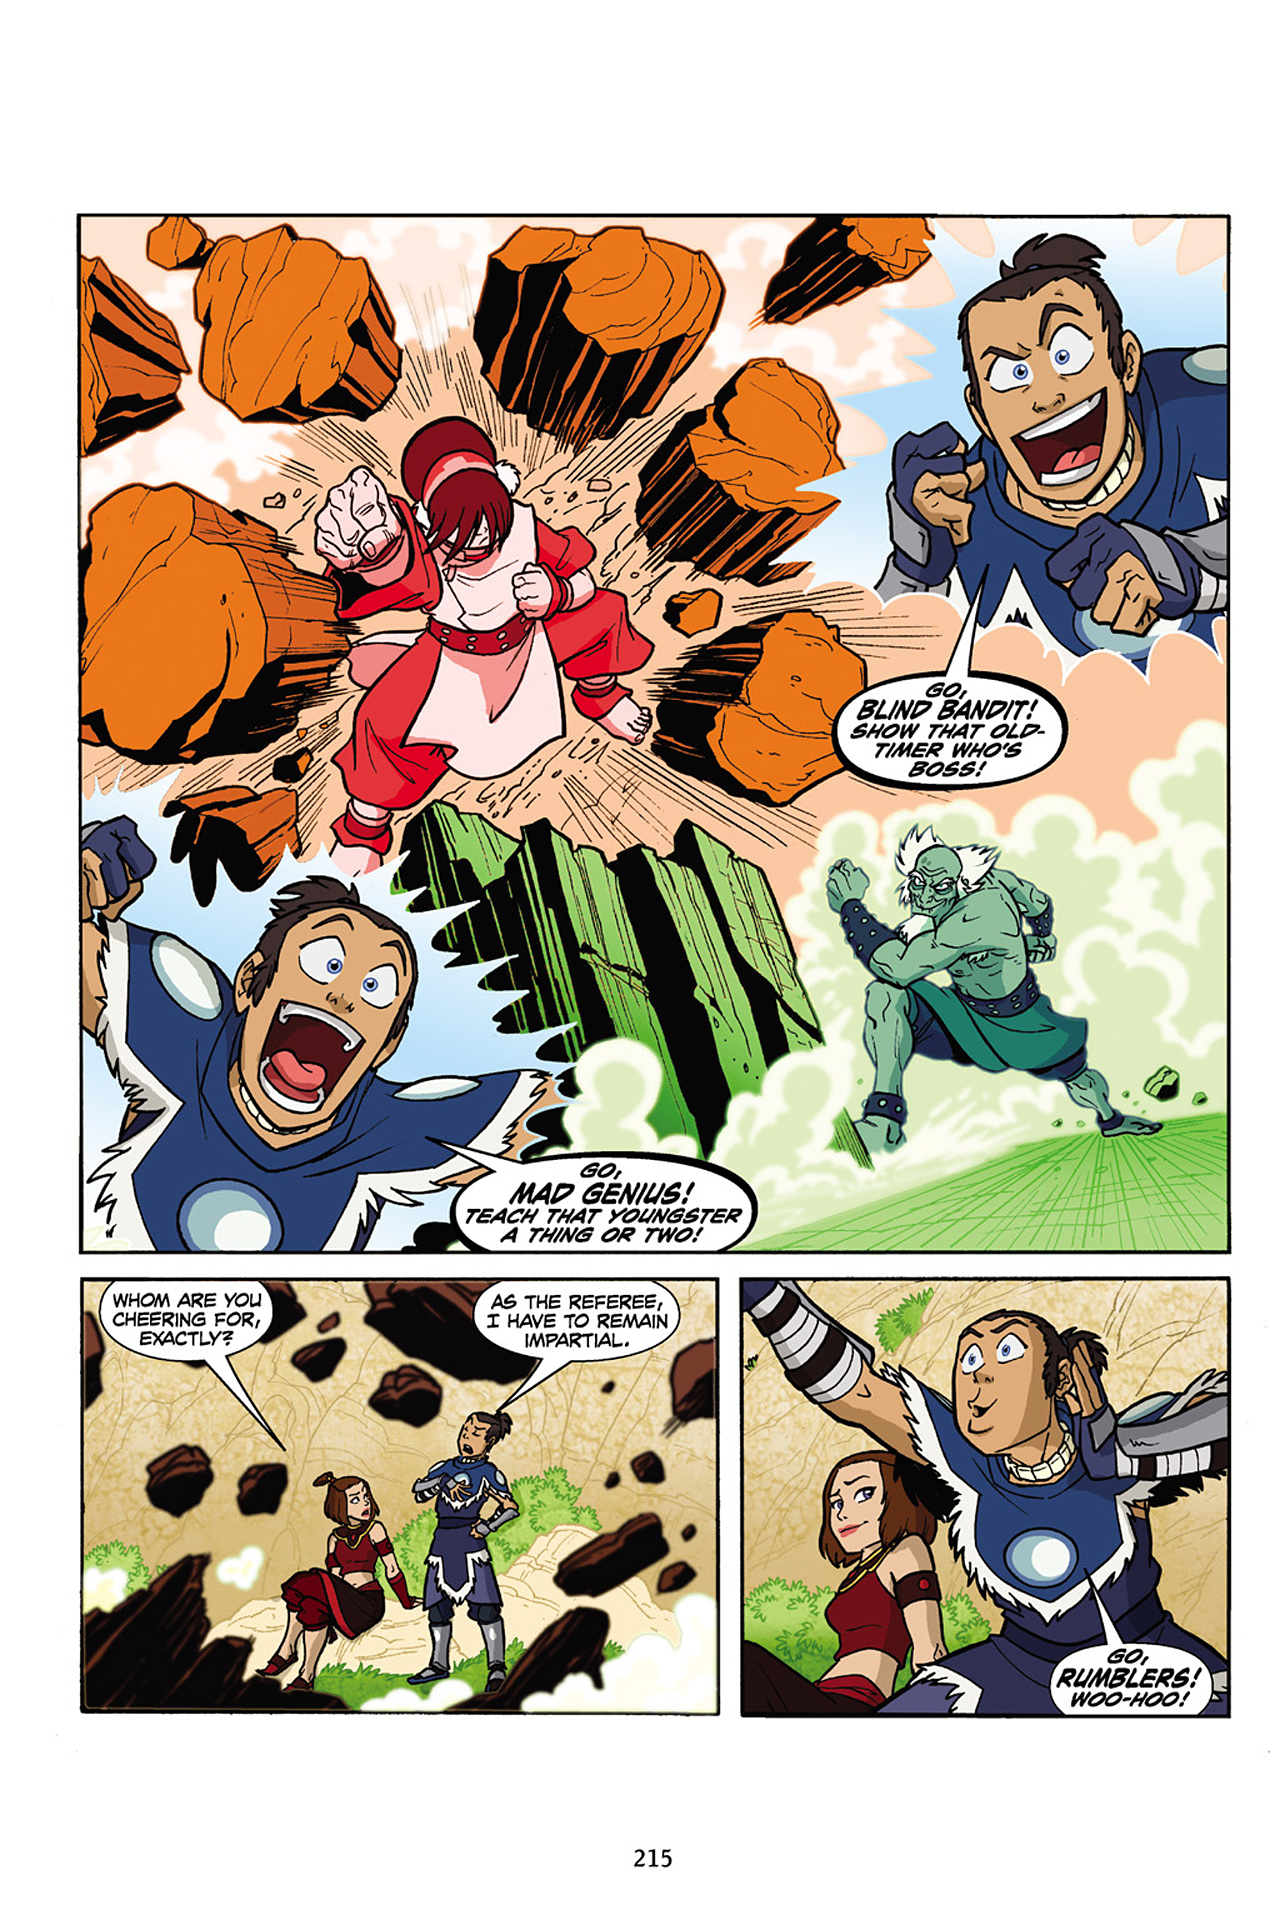 Nickelodeon Avatar: The Last Airbender - The Lost Adventures chap full pic 216